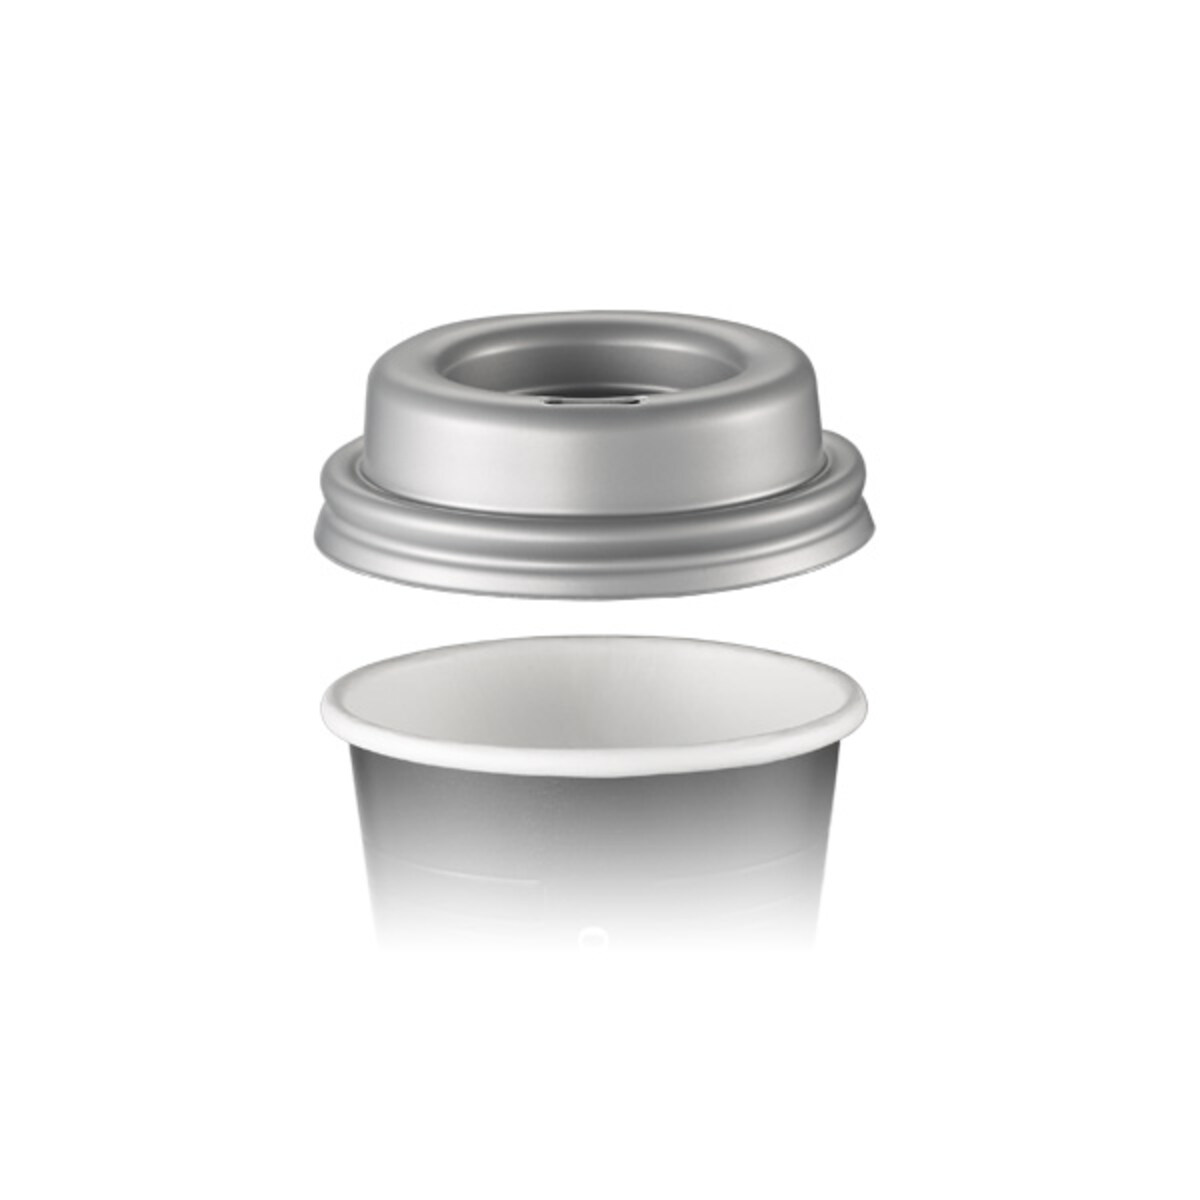 Nespresso Take away Lid - Small